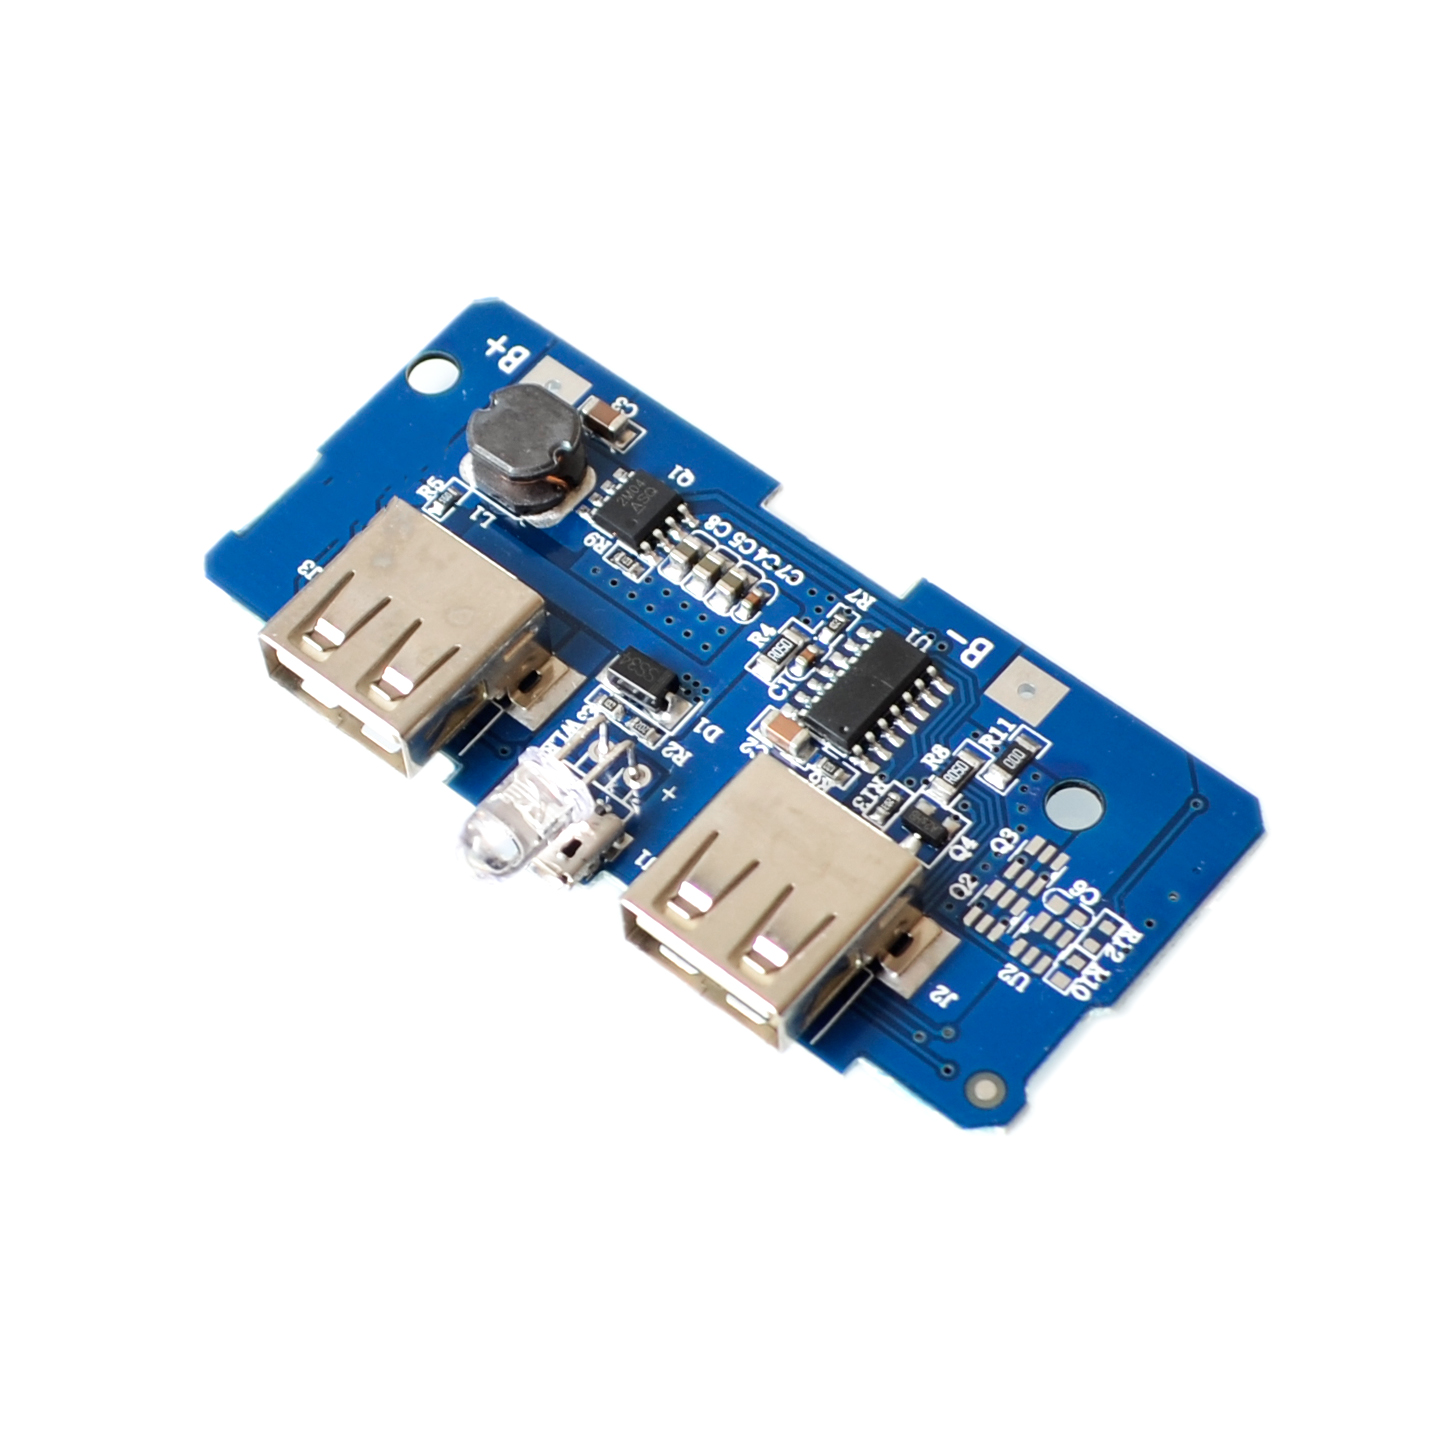 10PCS/LOT 5V 2A Power Bank Charger Module Charging Circuit Board Step Up Boost Power Supply Module 2A Dual USB Output 1A